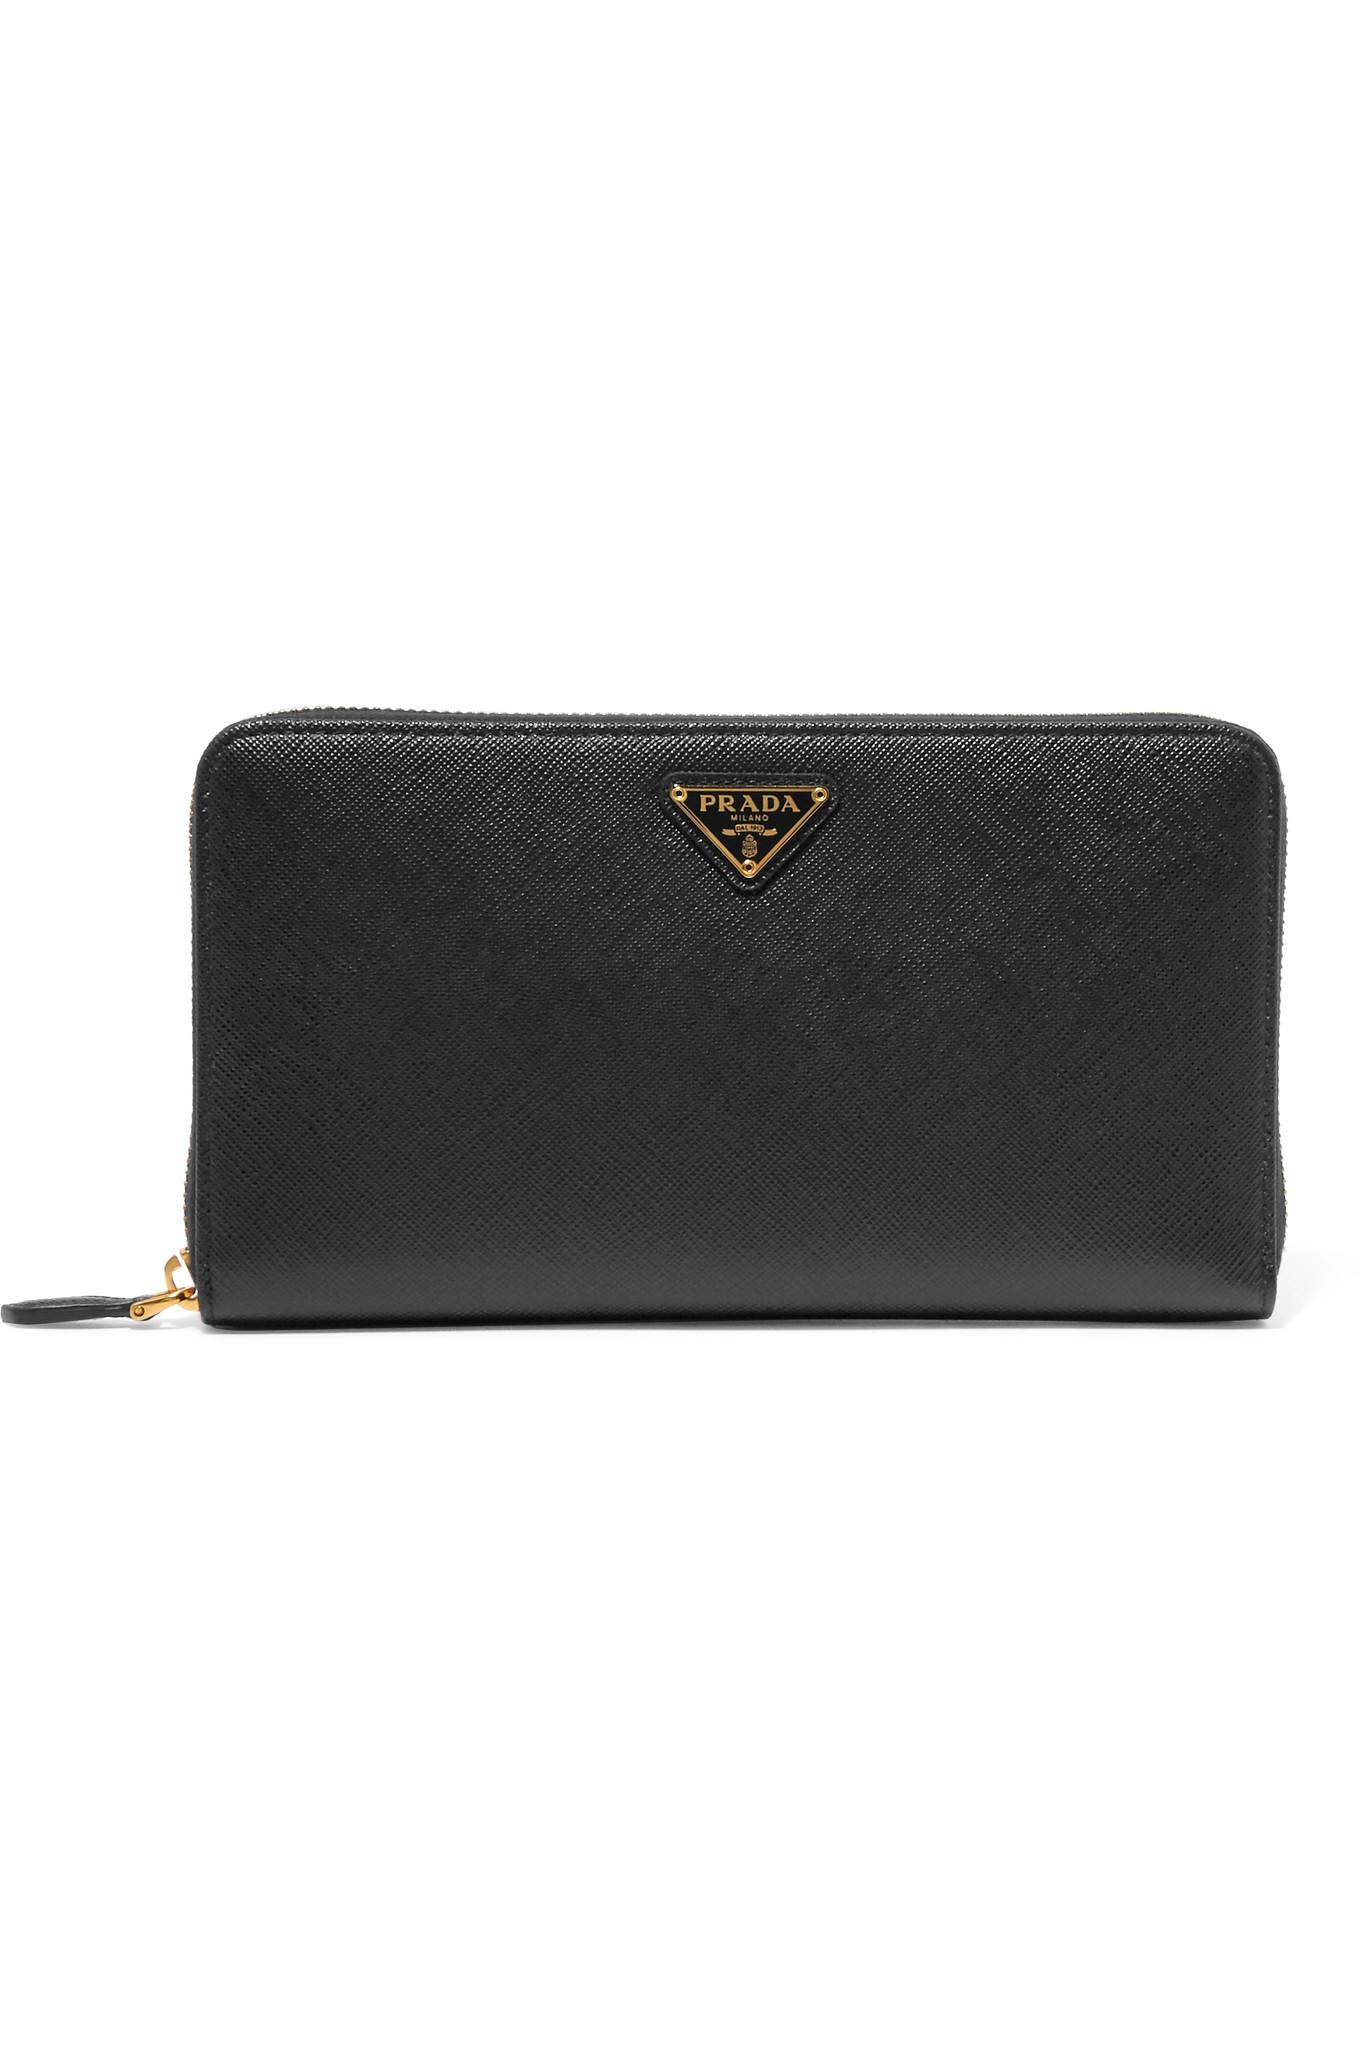 0754221327a00c Prada. Women's Travel Textured-leather Continental Wallet